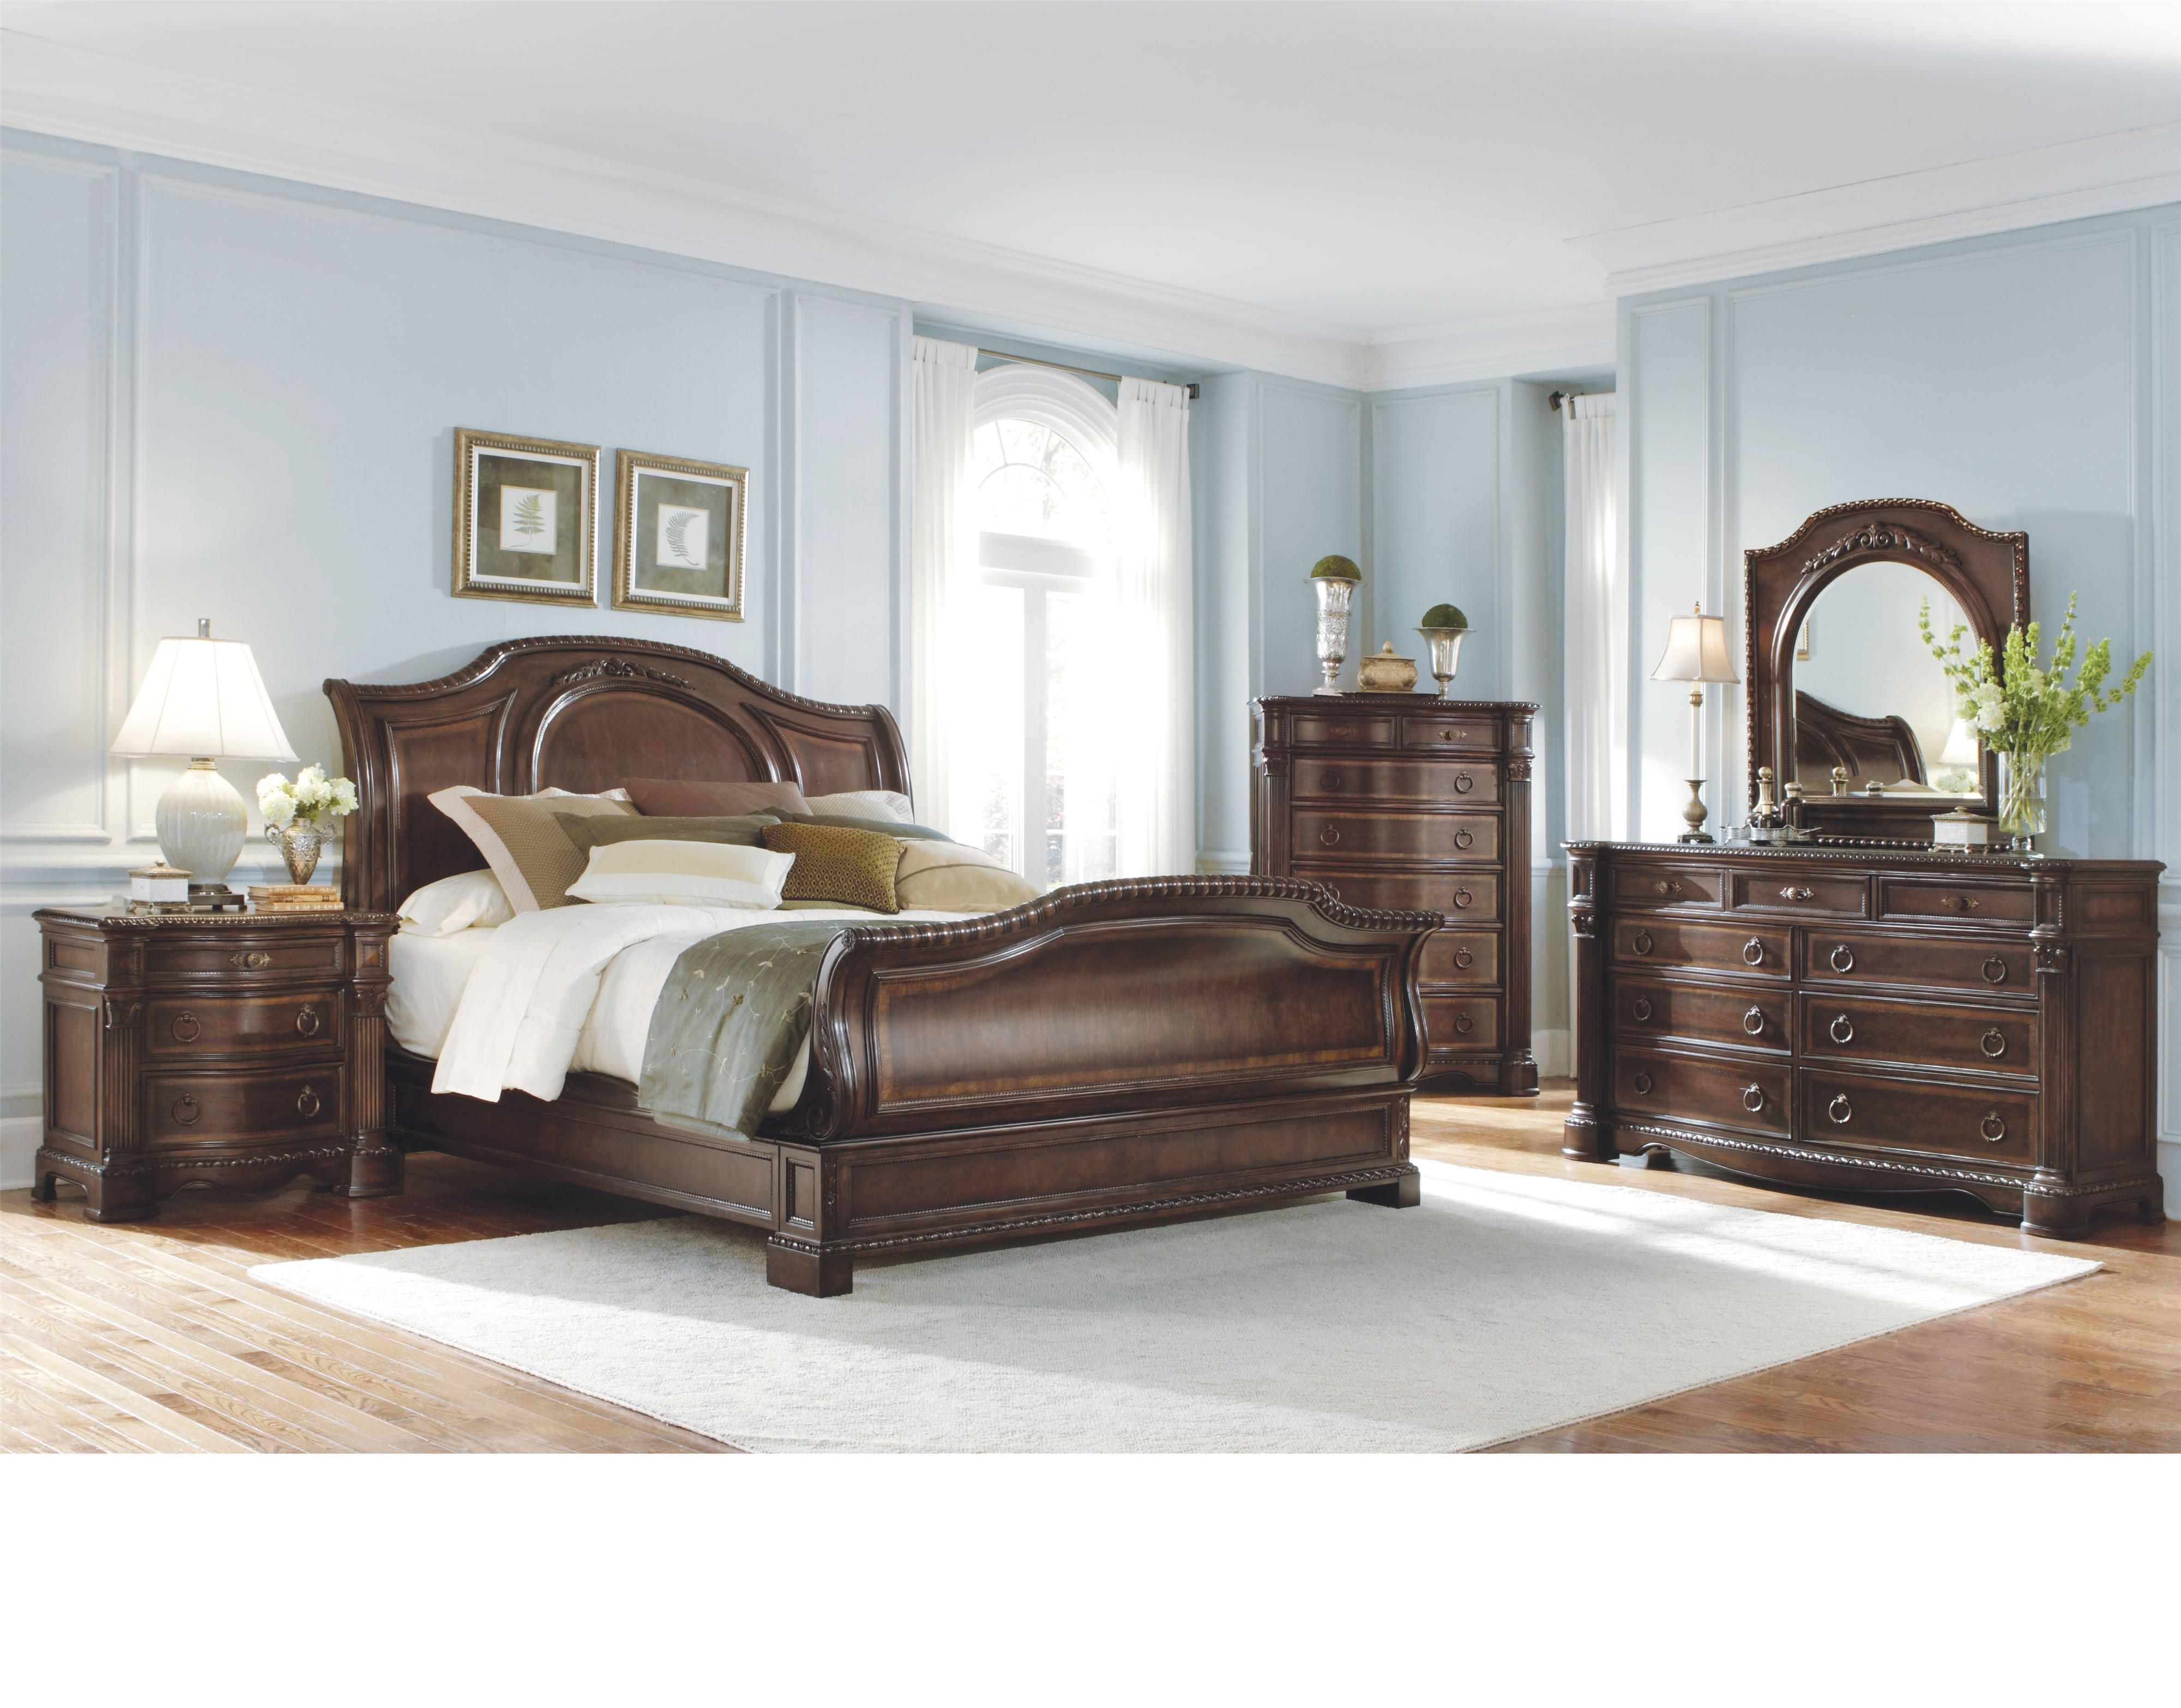 Washington S Favorite Furntiure Since 1955 Marlo Furniture Rockville 725 Pike Md 20852 301 738 9000 Www Marlofurniture